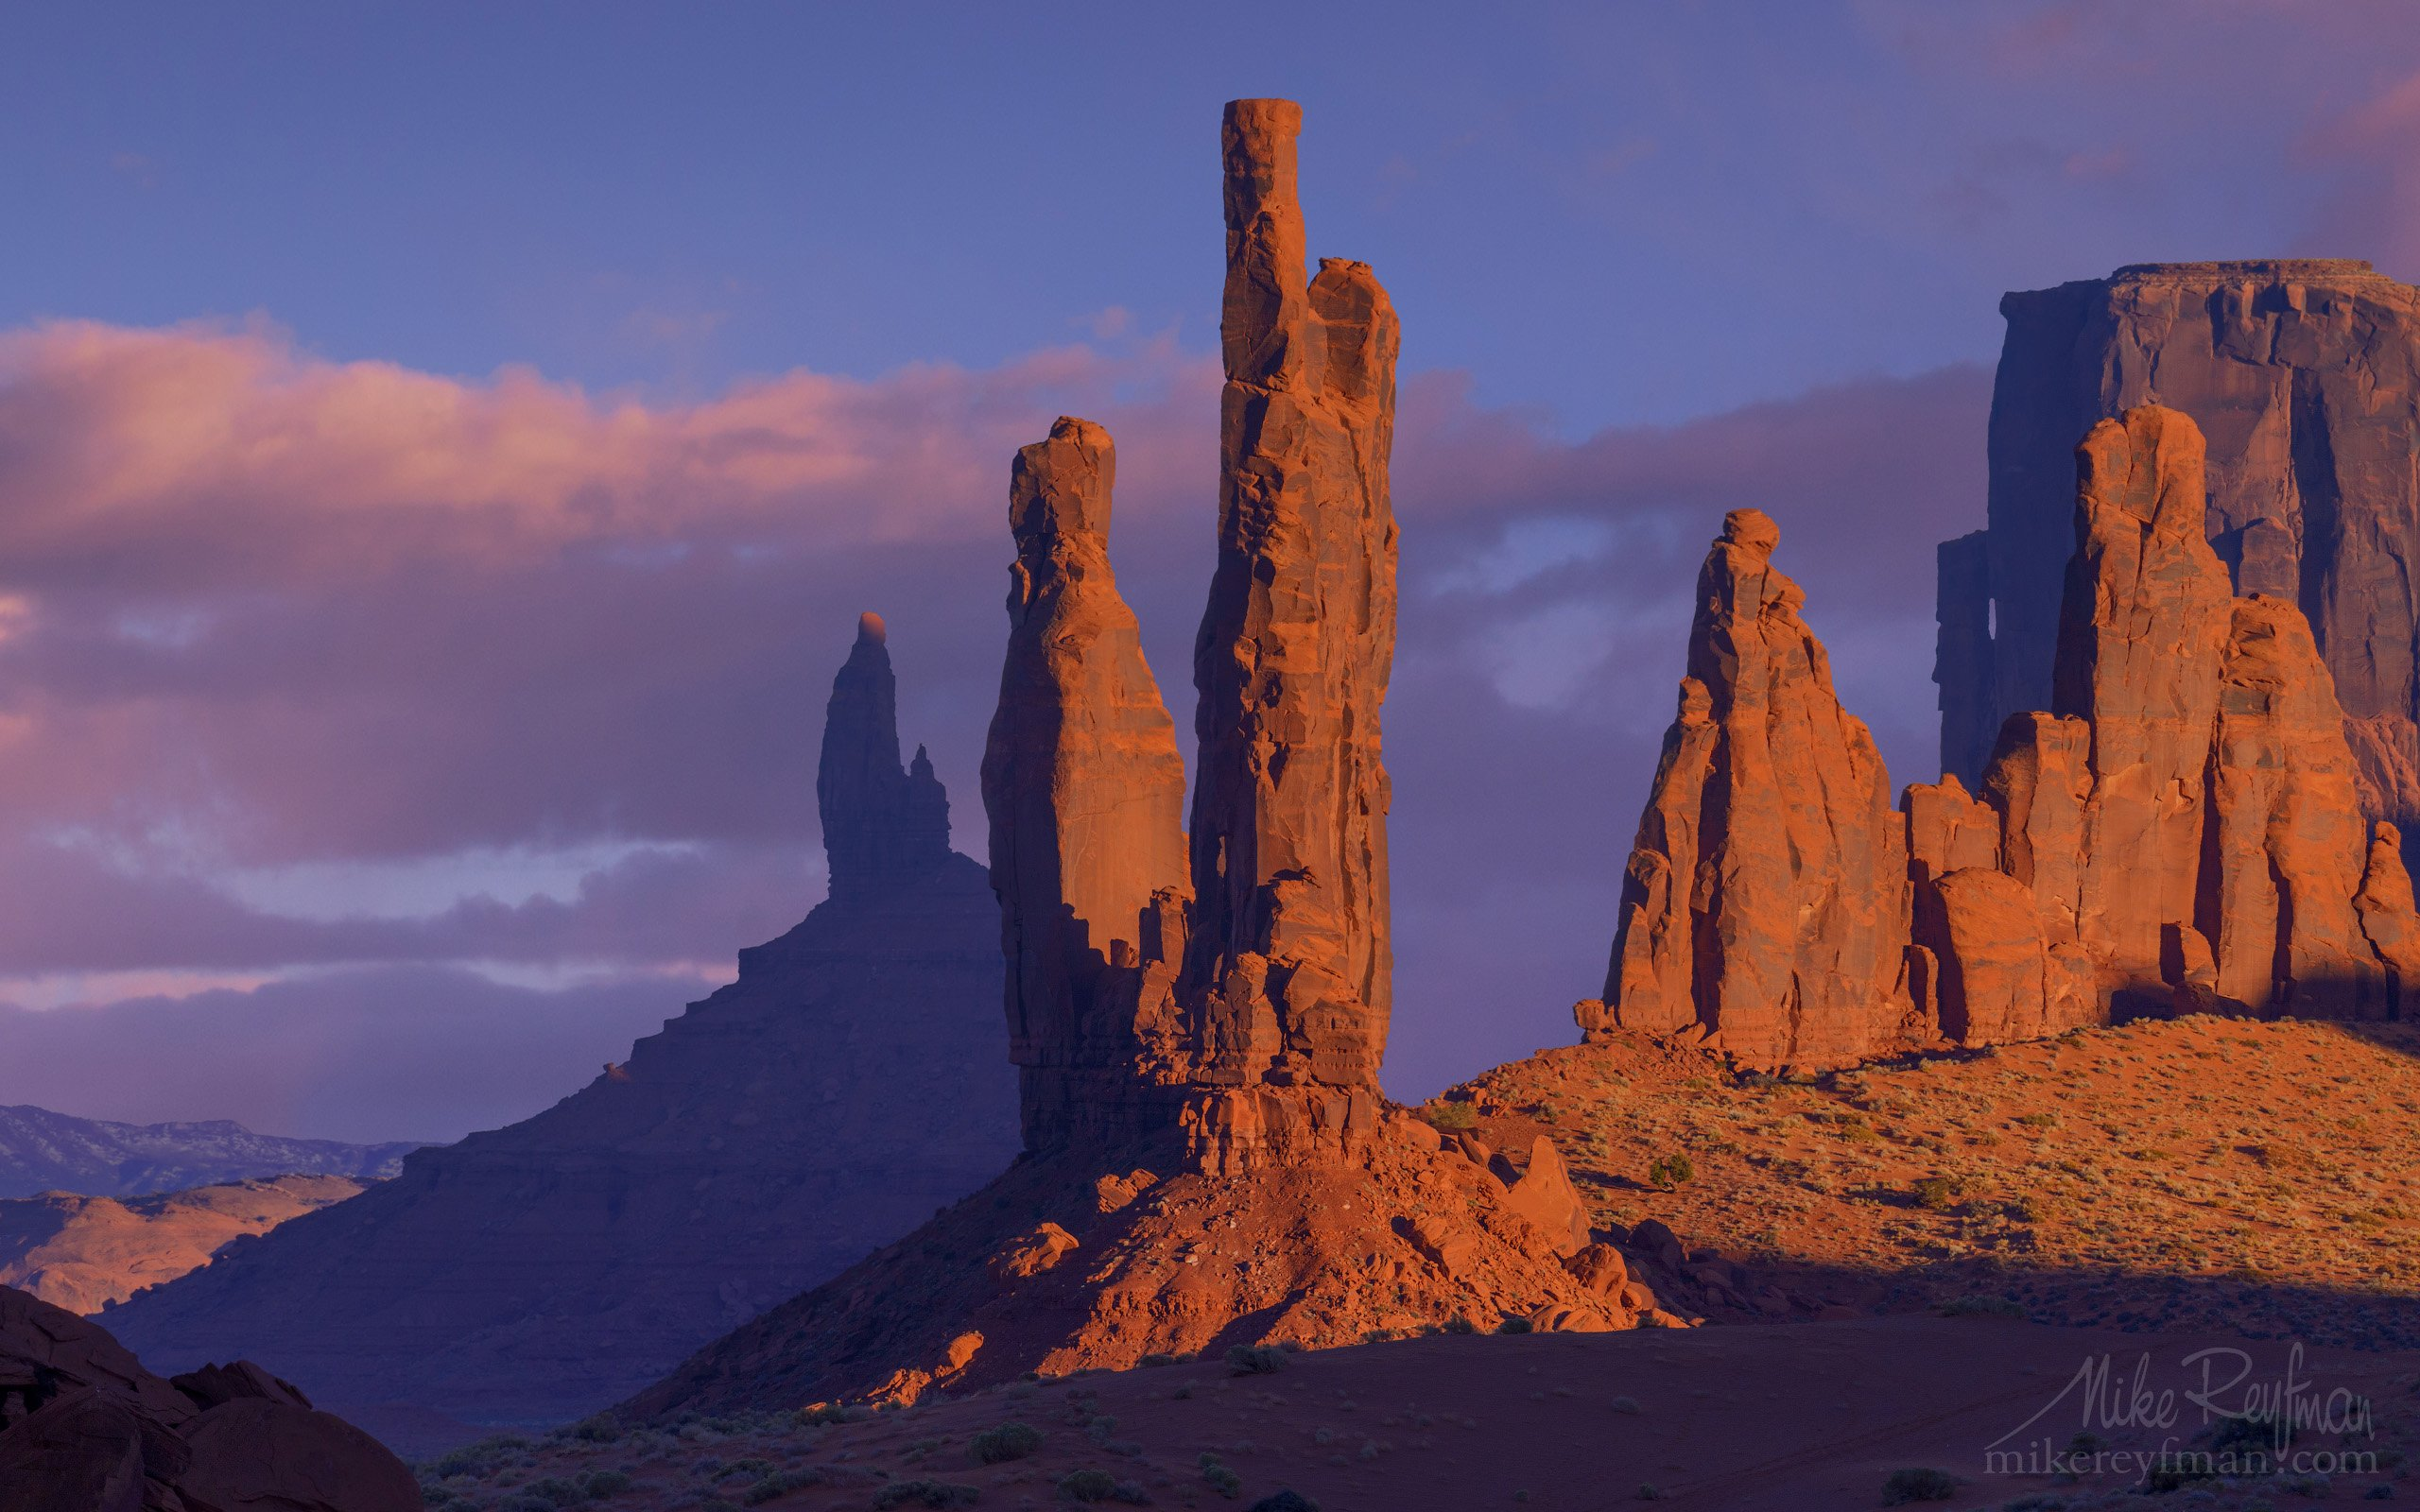 400mm, totem pоle, yei-bi-chei, monument valley, arizona, usa, Майк Рейфман